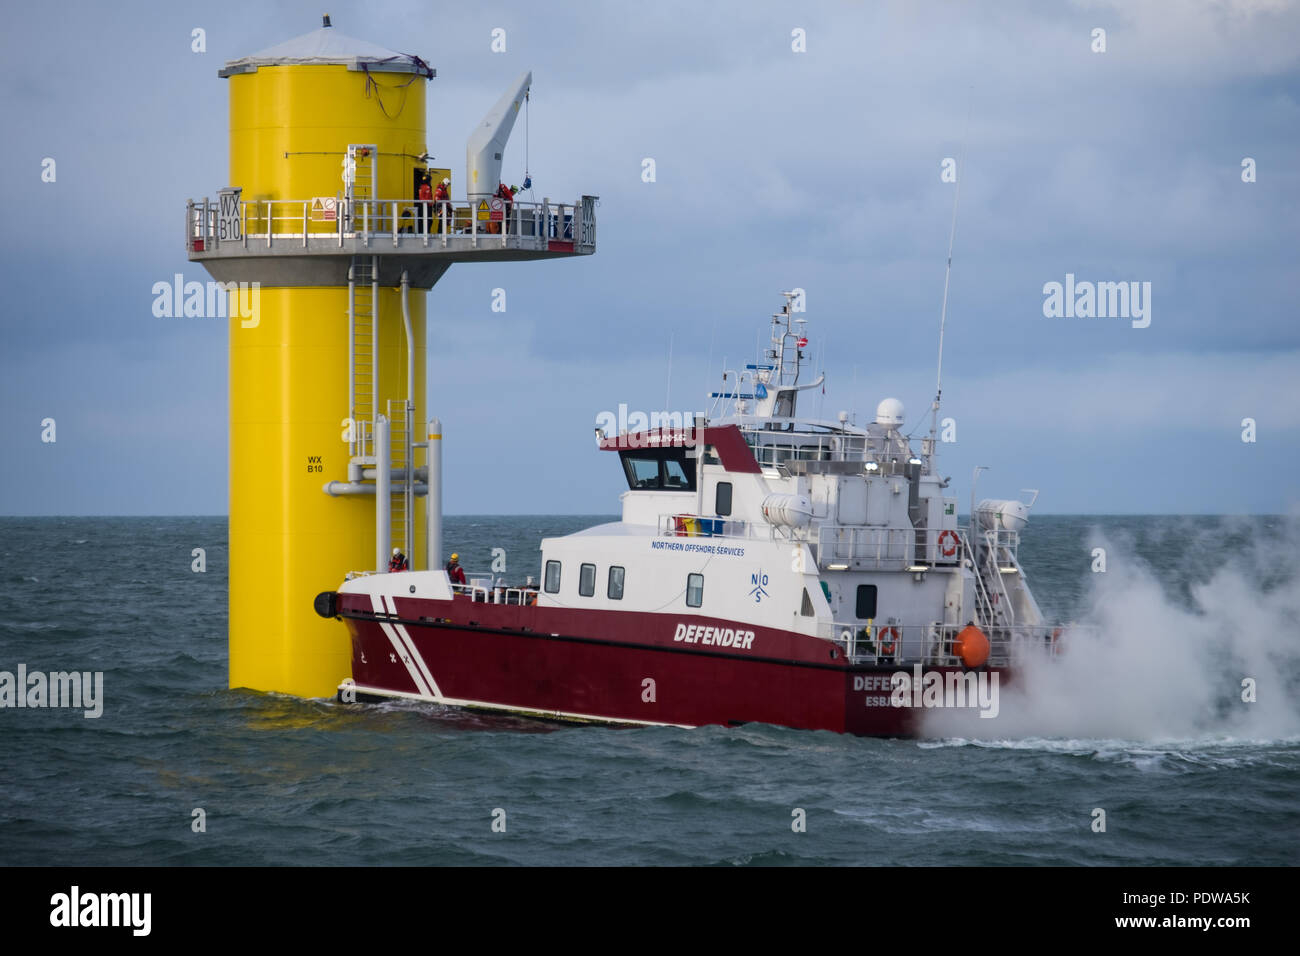 The crew transfer vessel, Defender, working on the Walney Extension Offshore Wind Farm - Stock Image